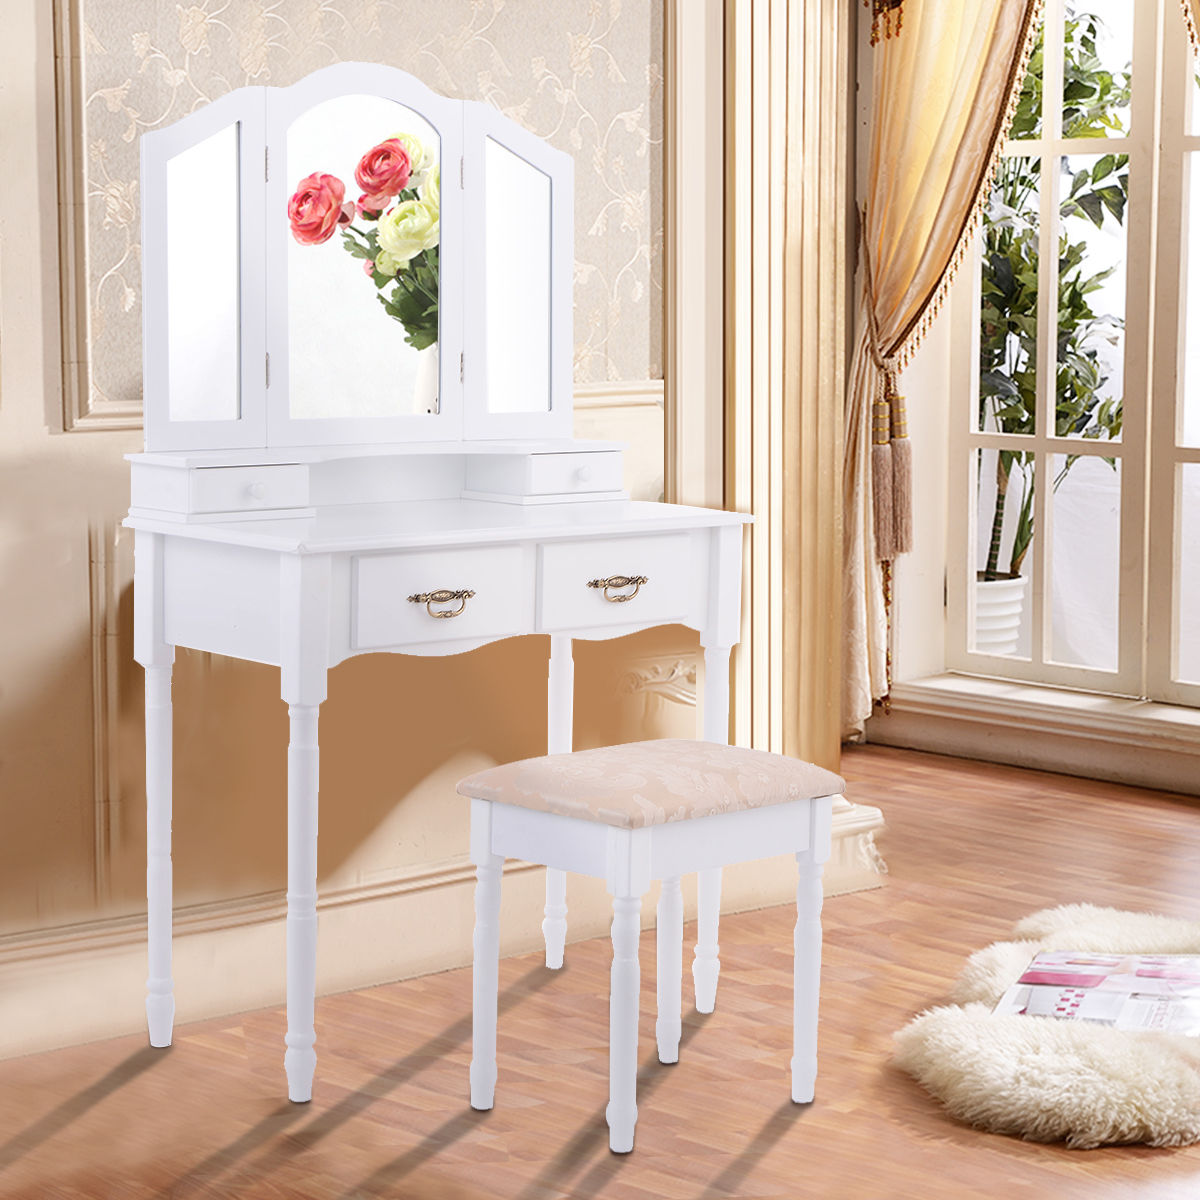 Costway White Tri Folding Mirror Vanity Makeup Table Stool Set Home Furni W 4 Drawers by Costway